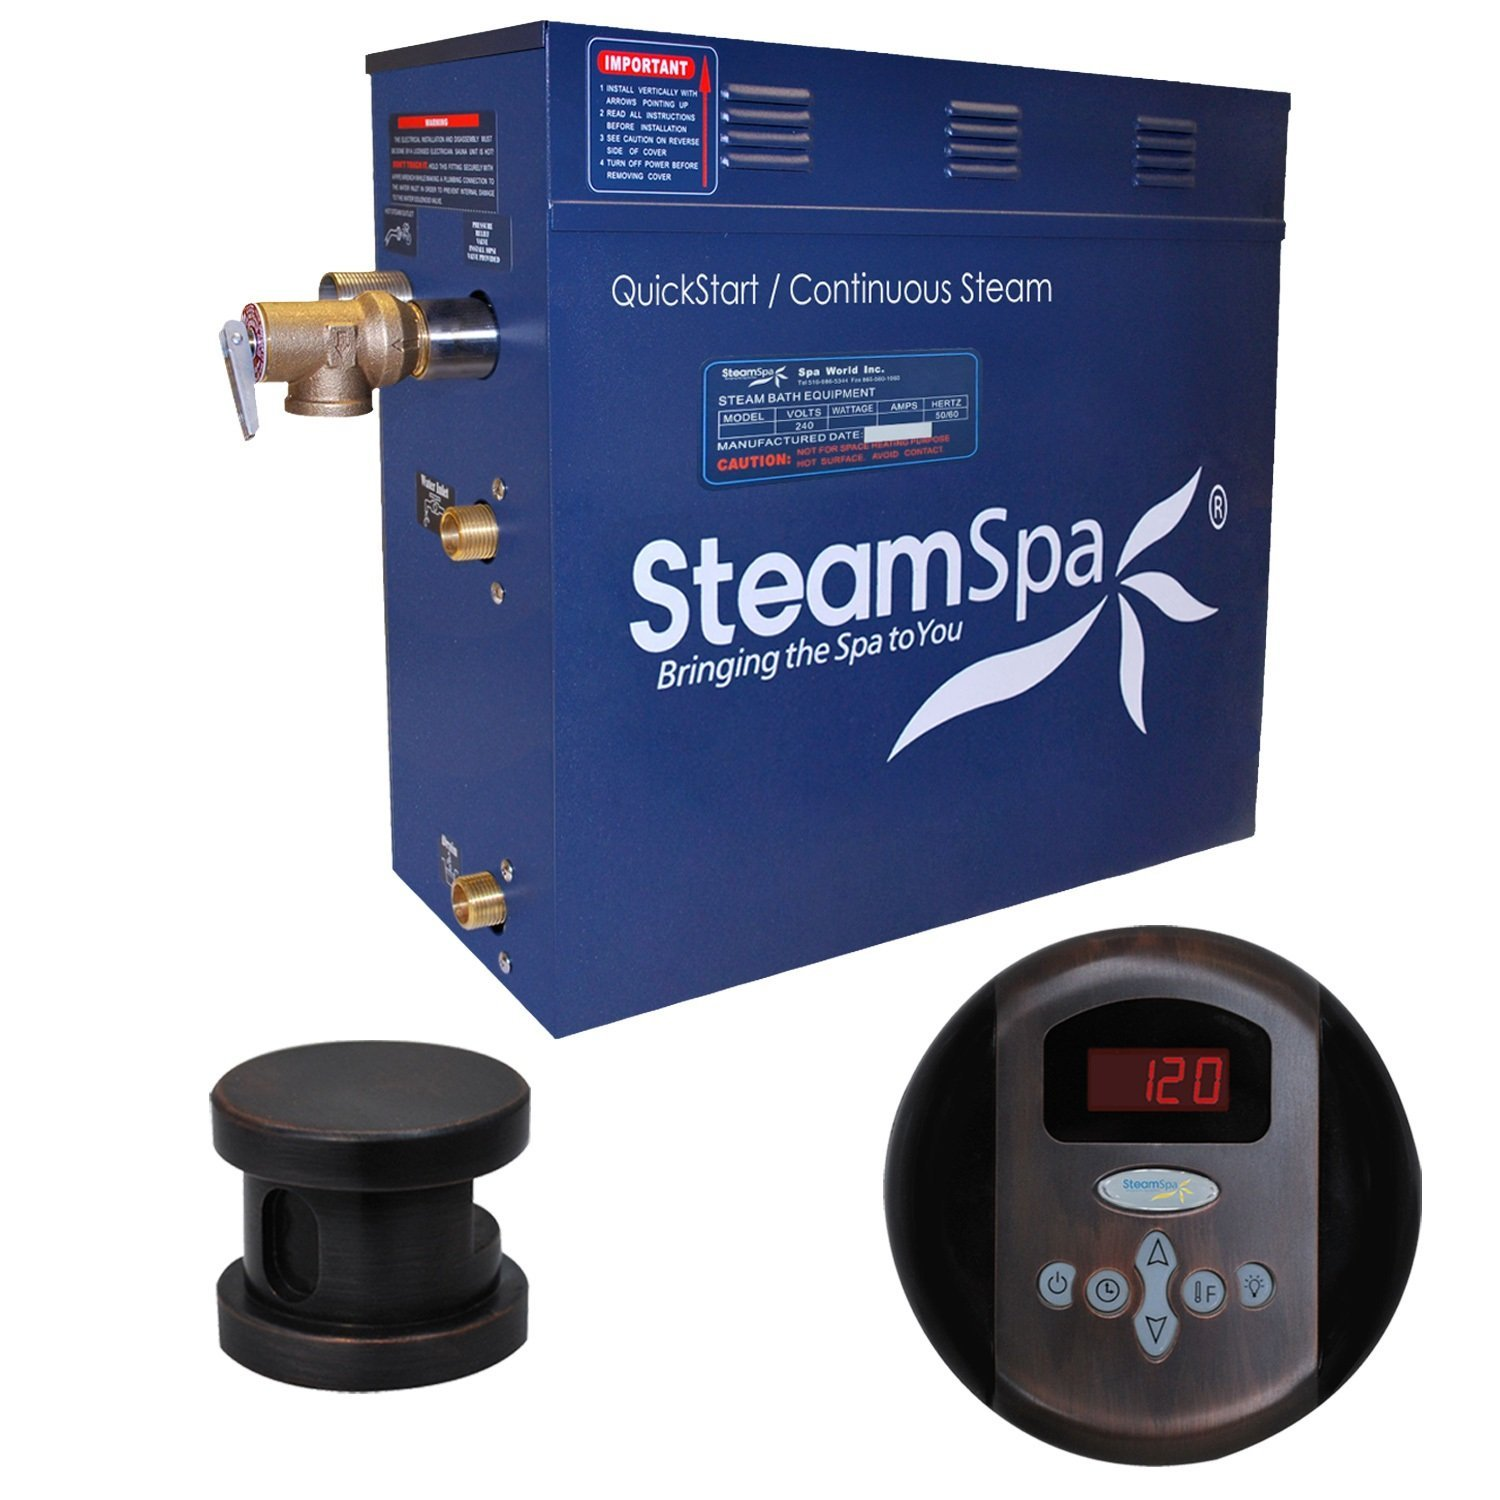 Steam Spa OA900OB Oasis 9 KW Quick Start Acu-Steam Bath Generator Package, Oil Rubbed Bronze by Steam Spa